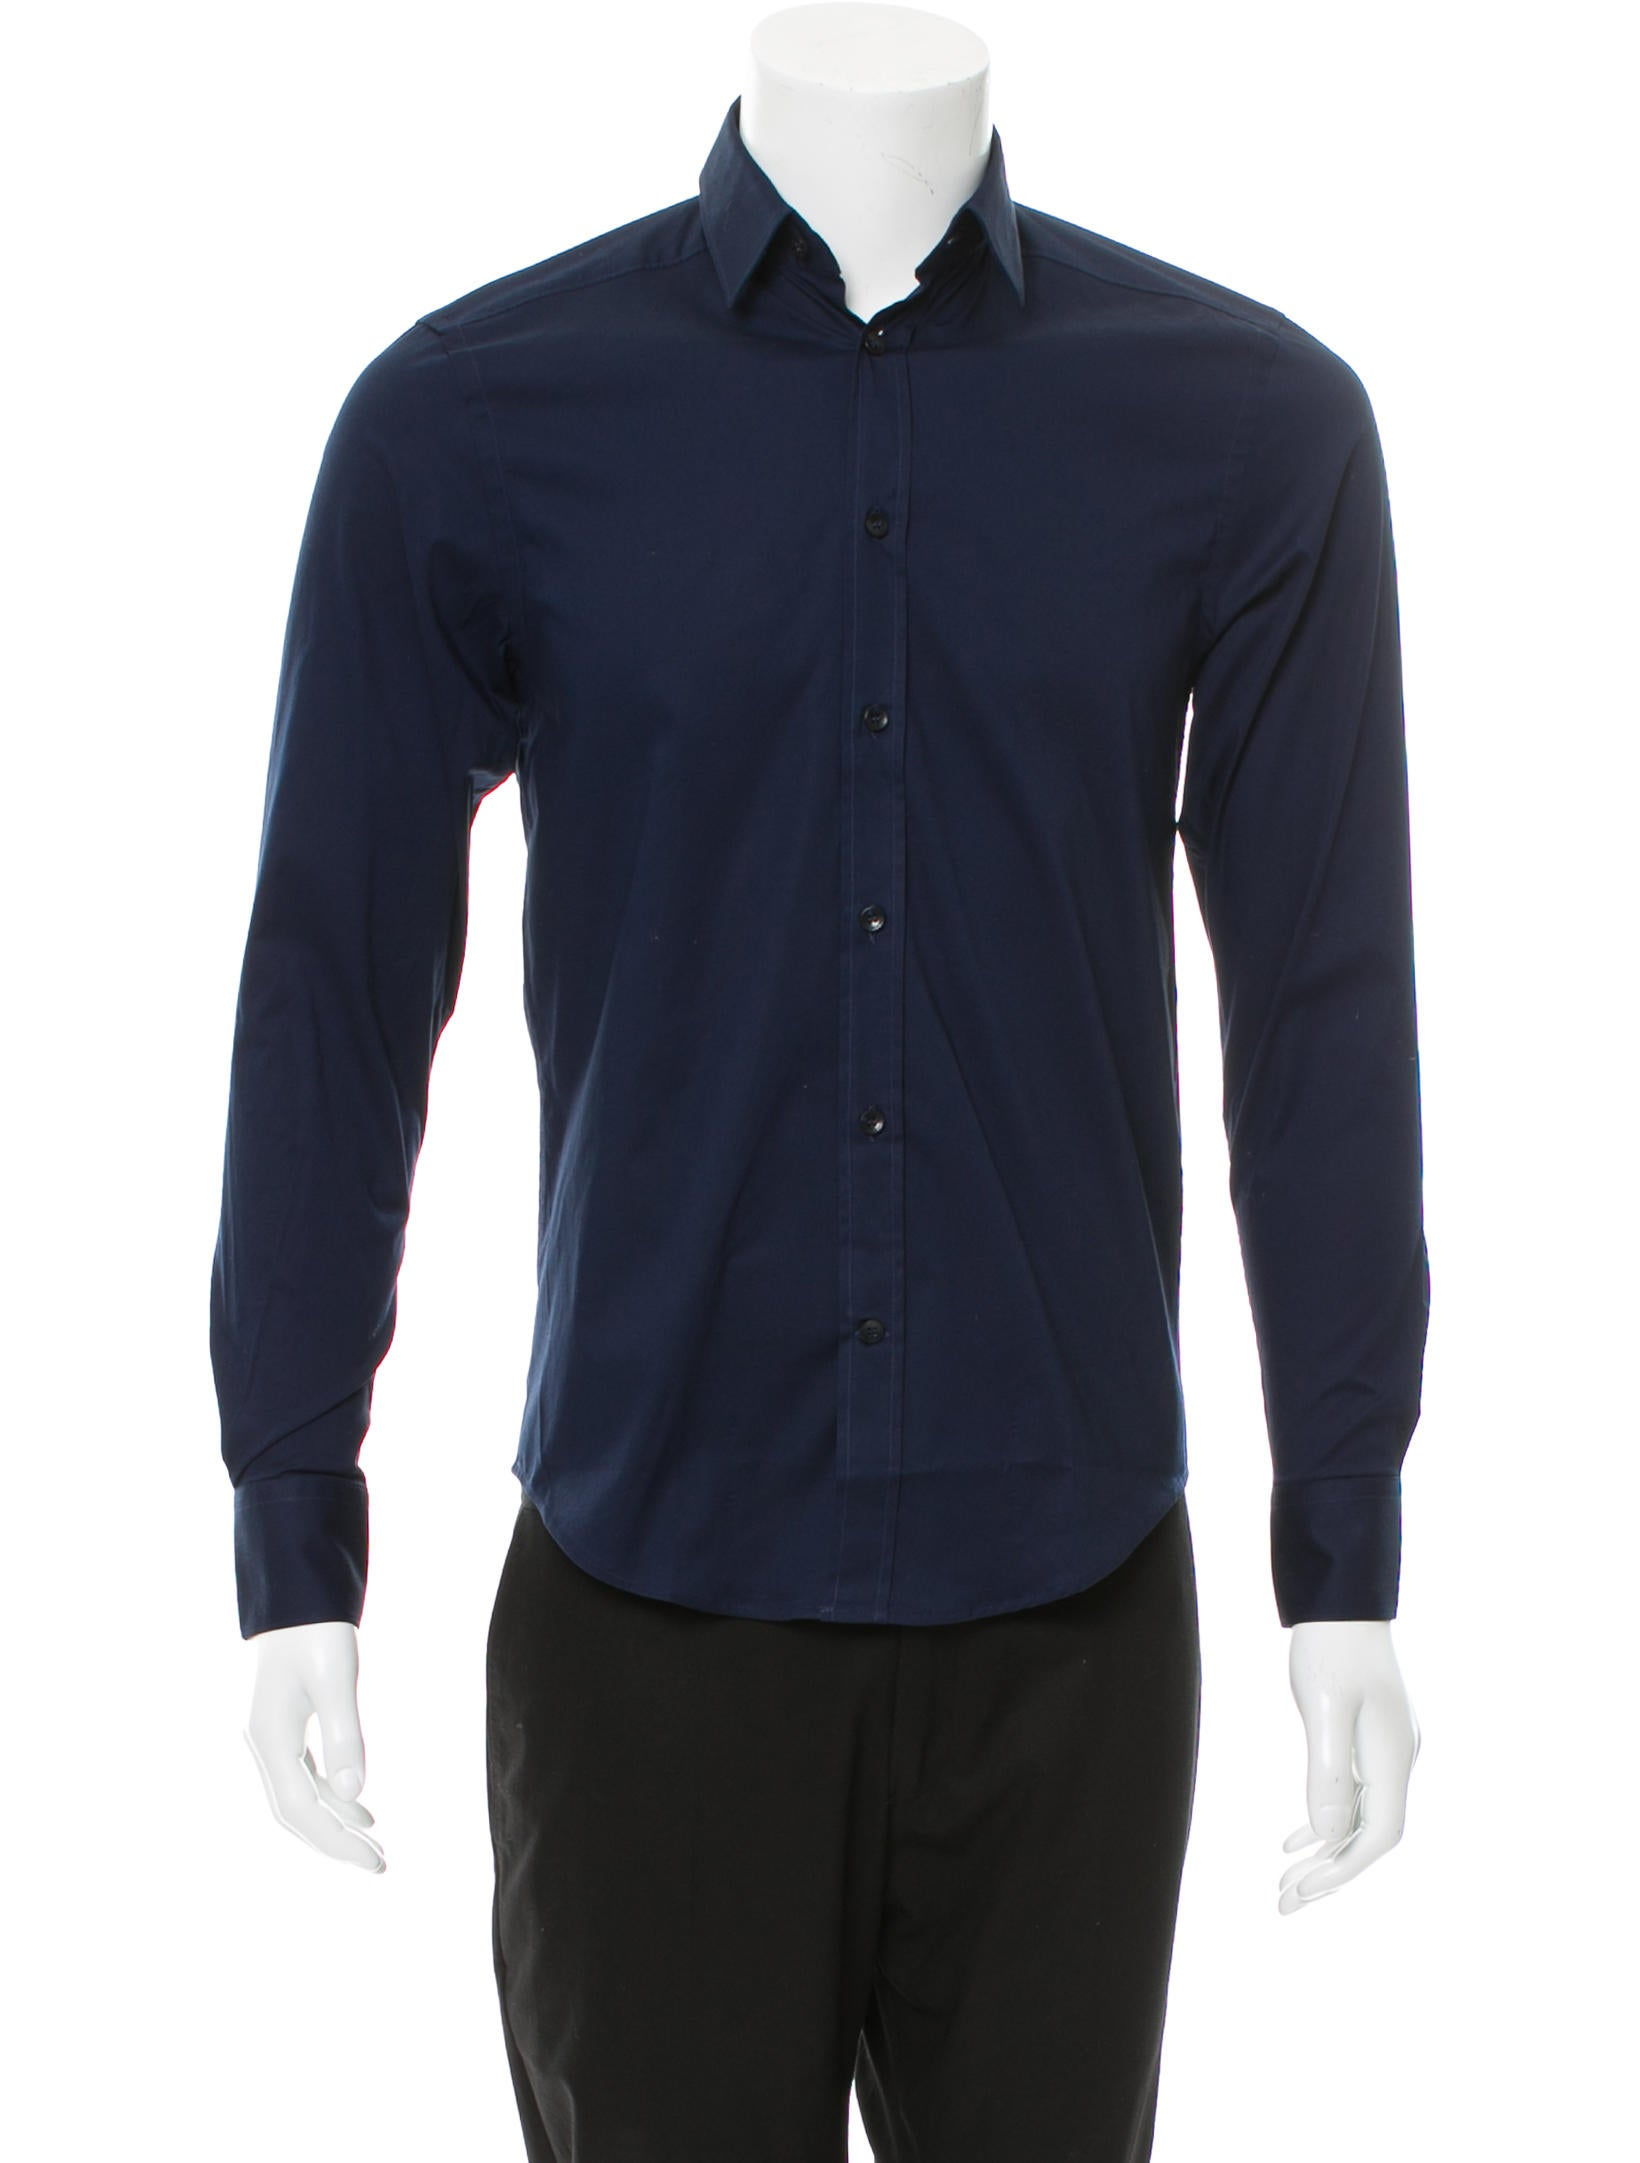 Versace collection woven button up shirt w tags Woven t shirt tags